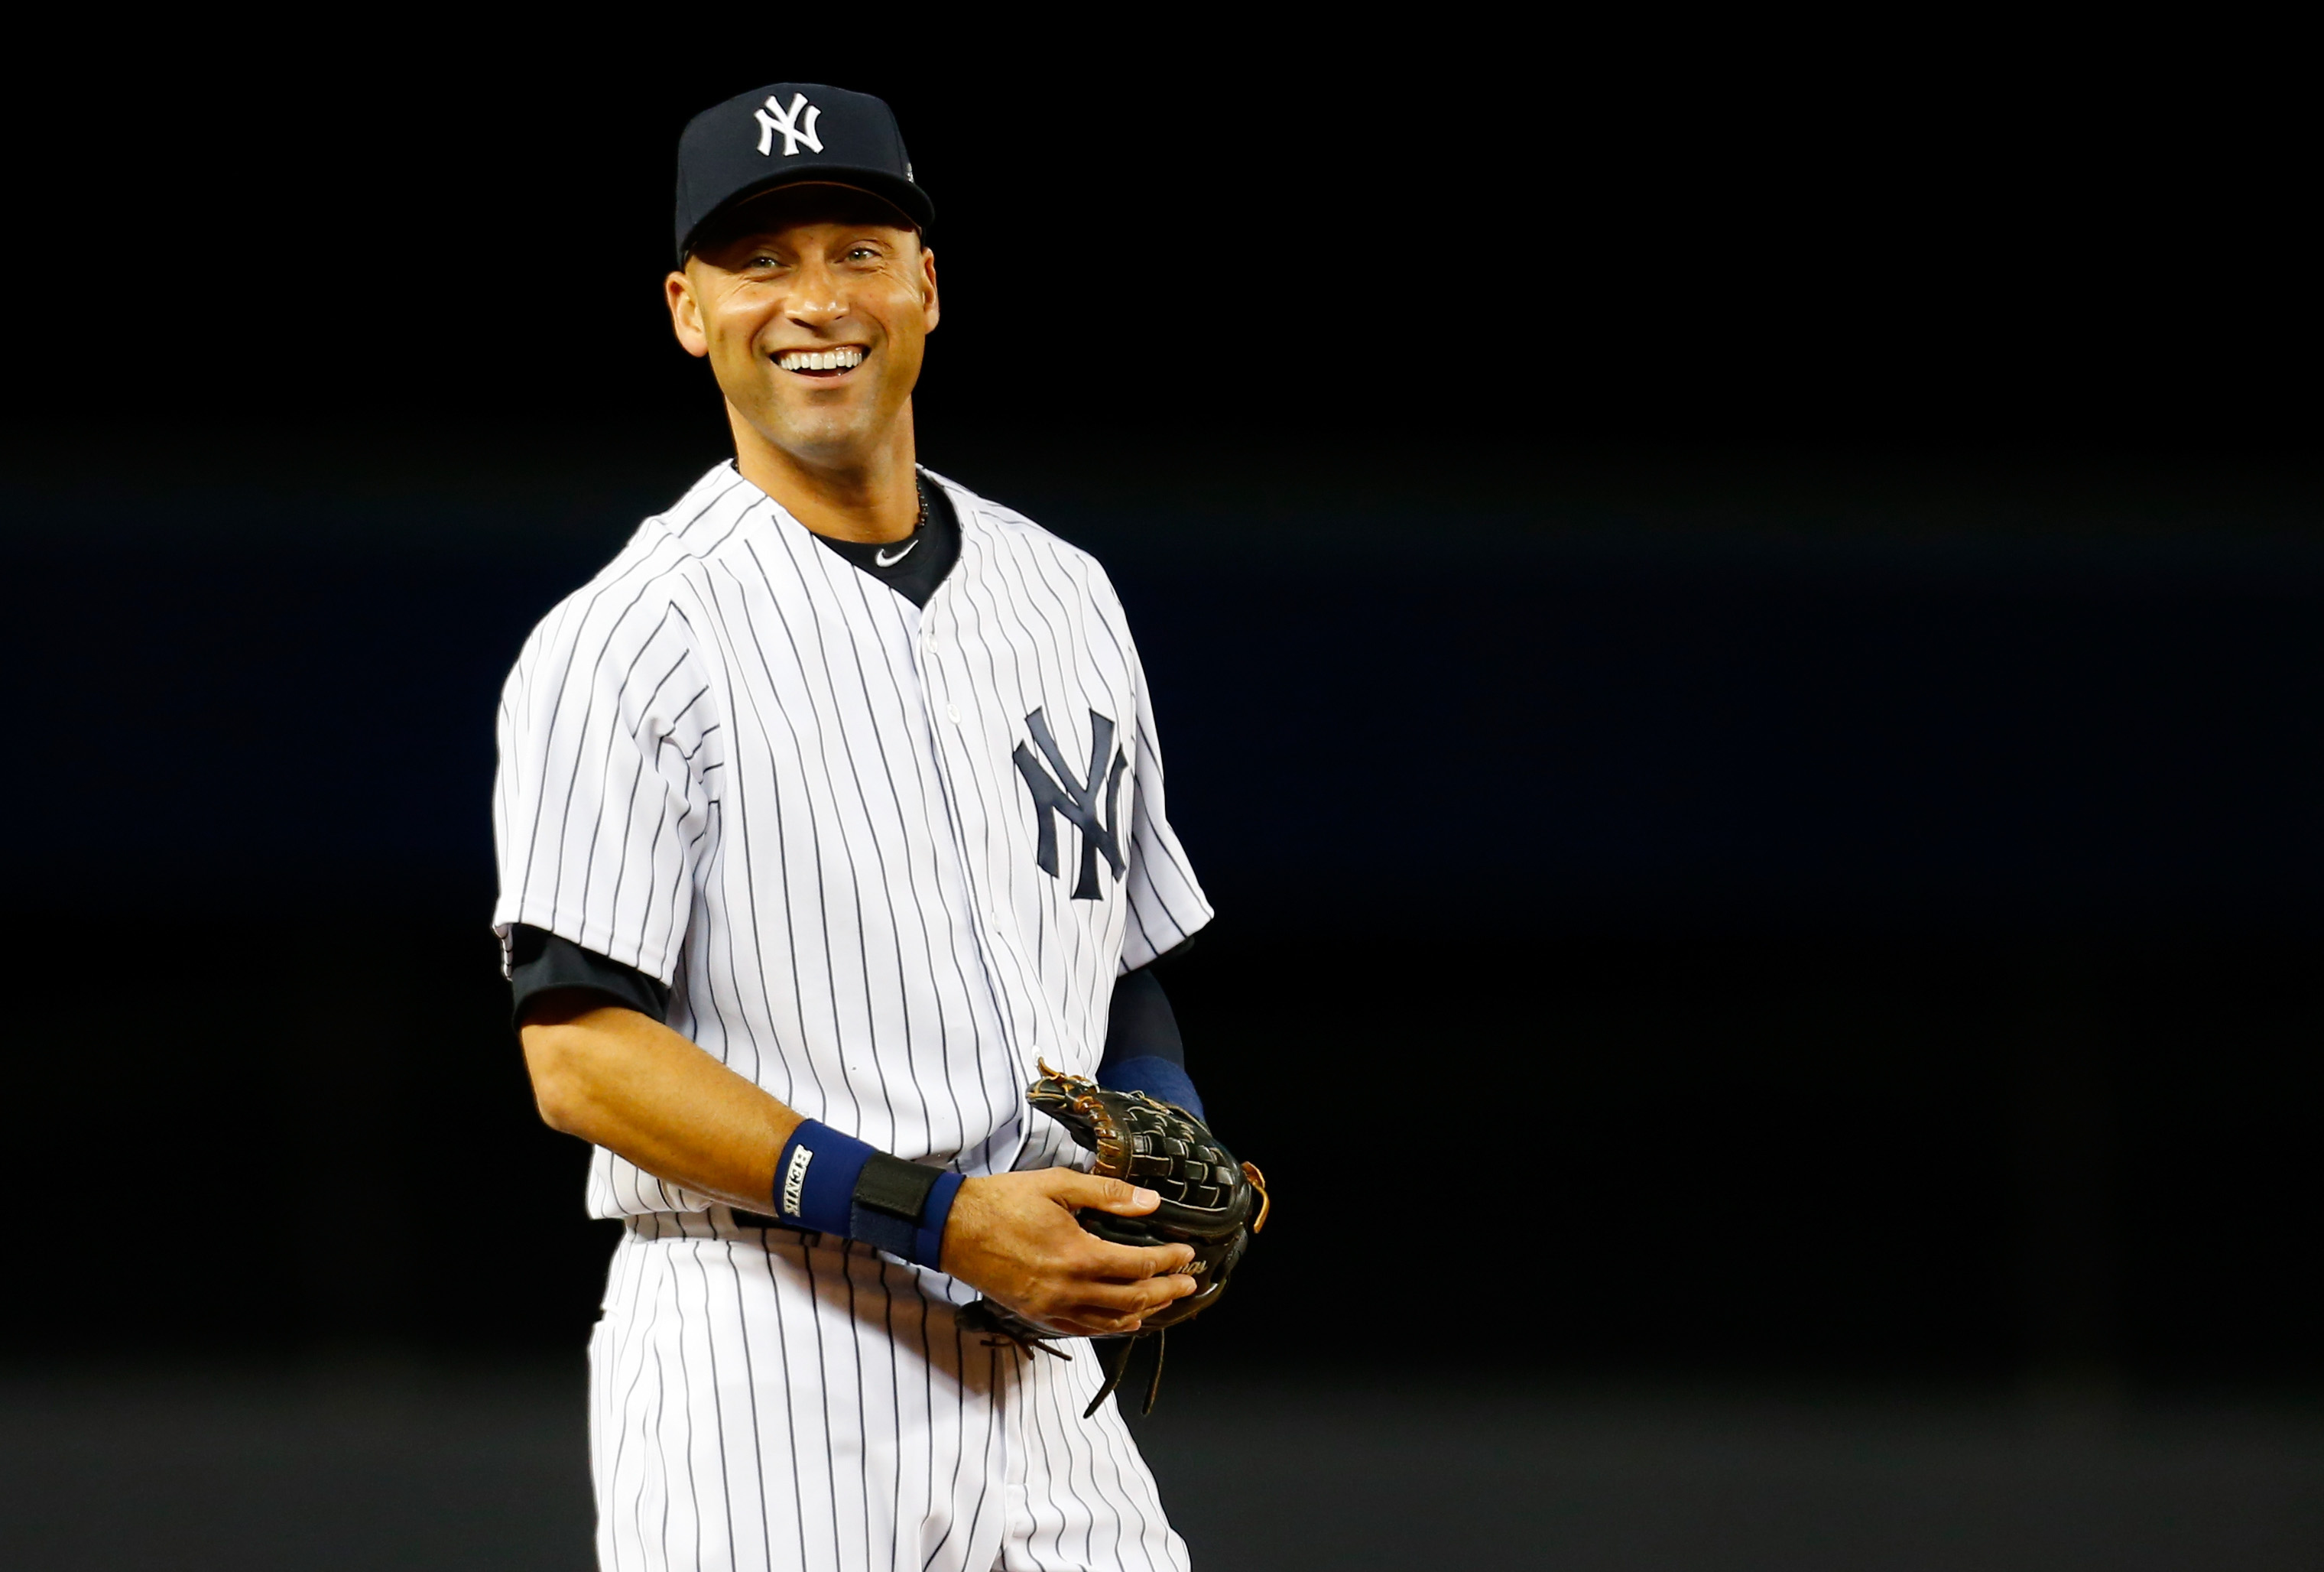 Derek Jeter #2 of the New York Yankees smiles prior to a game against the Baltimore Orioles at Yankee Stadium on September 22, 2014.